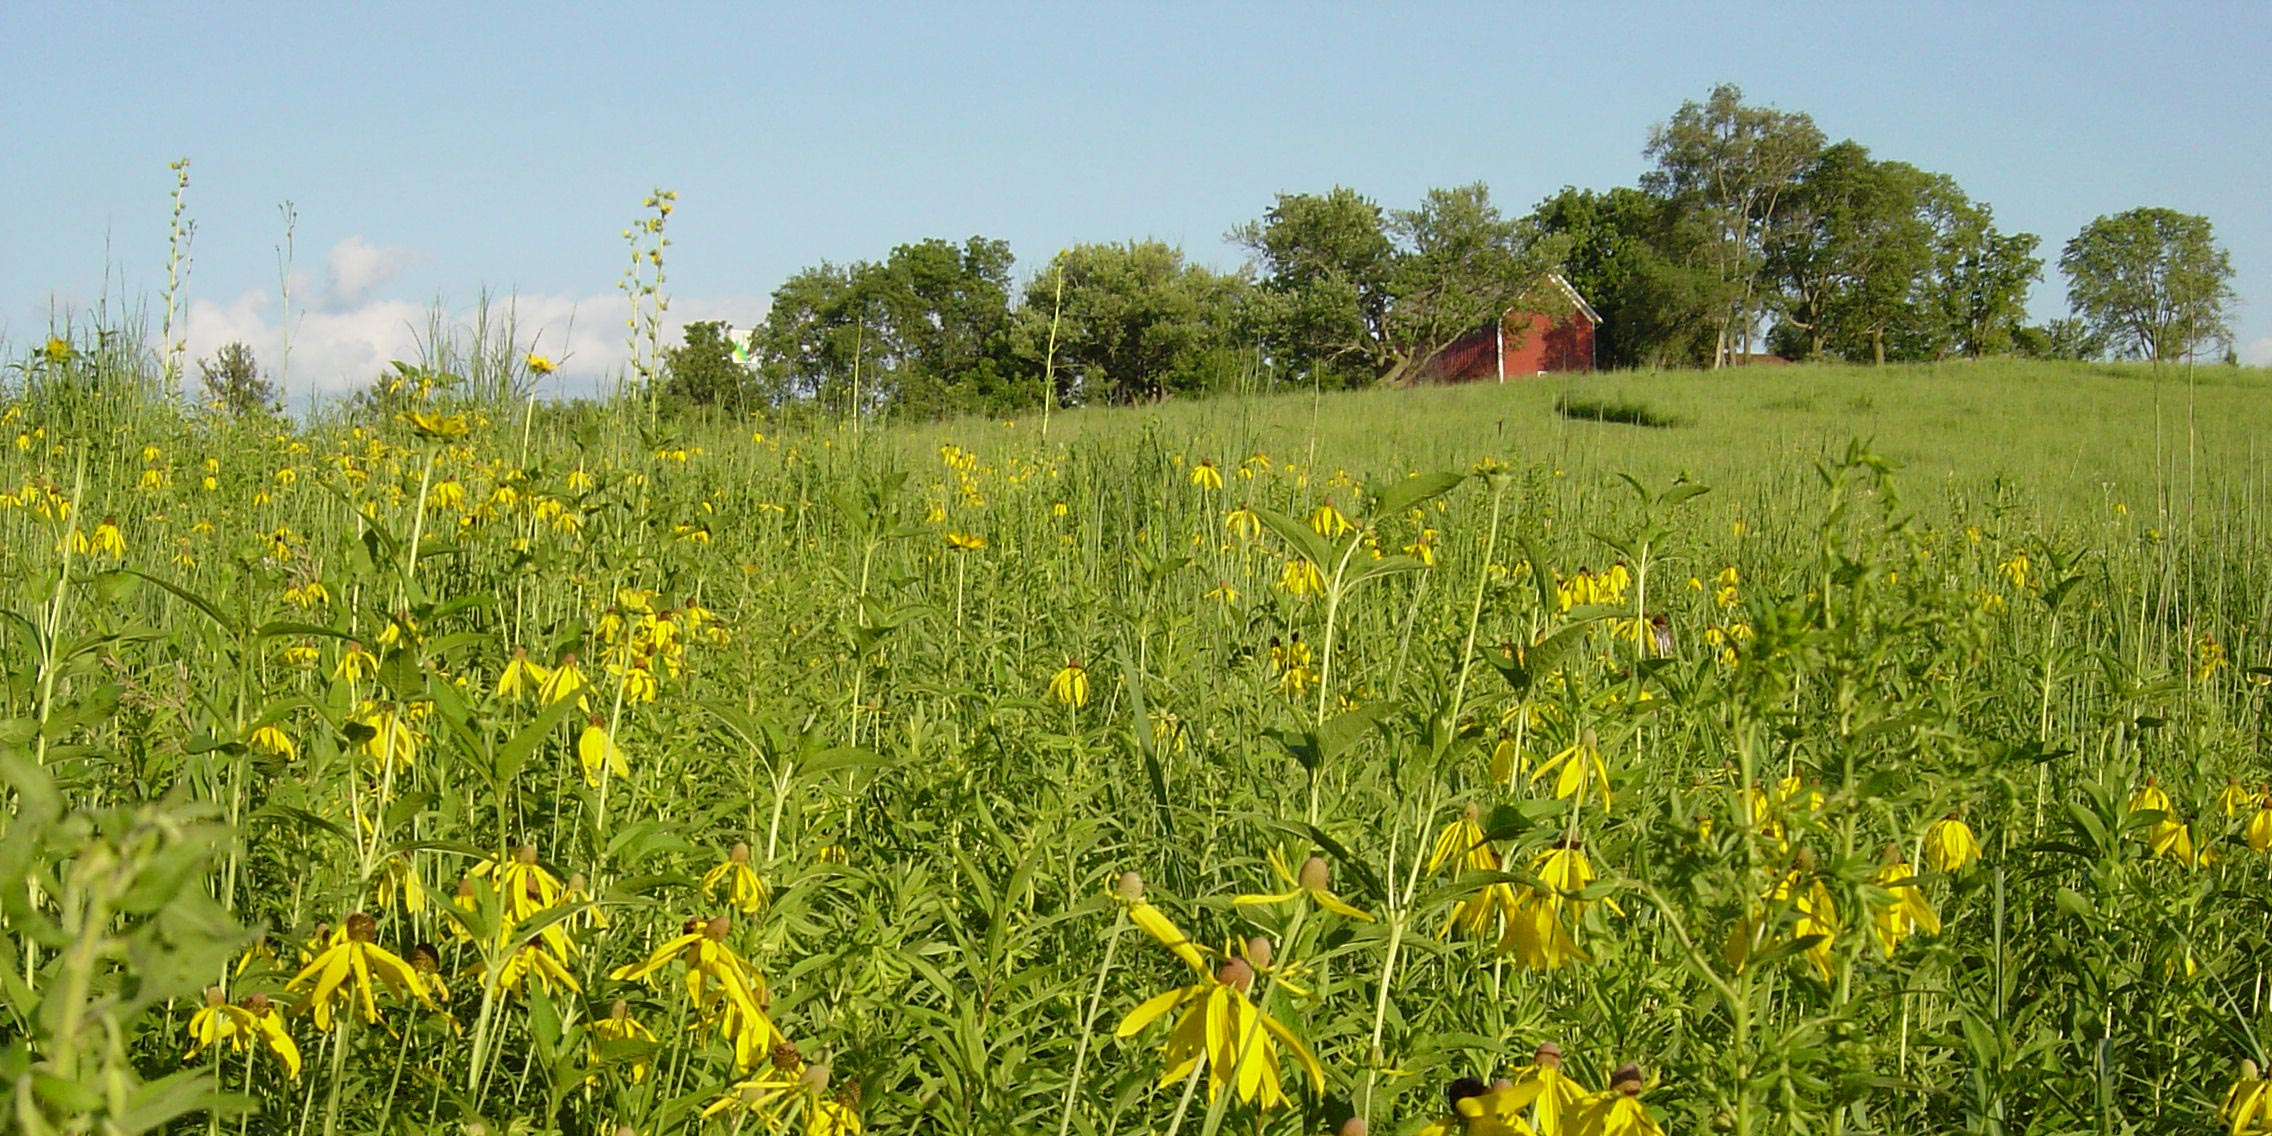 A red barn sits atop a bright green meadow with brilliant yellow flowers.